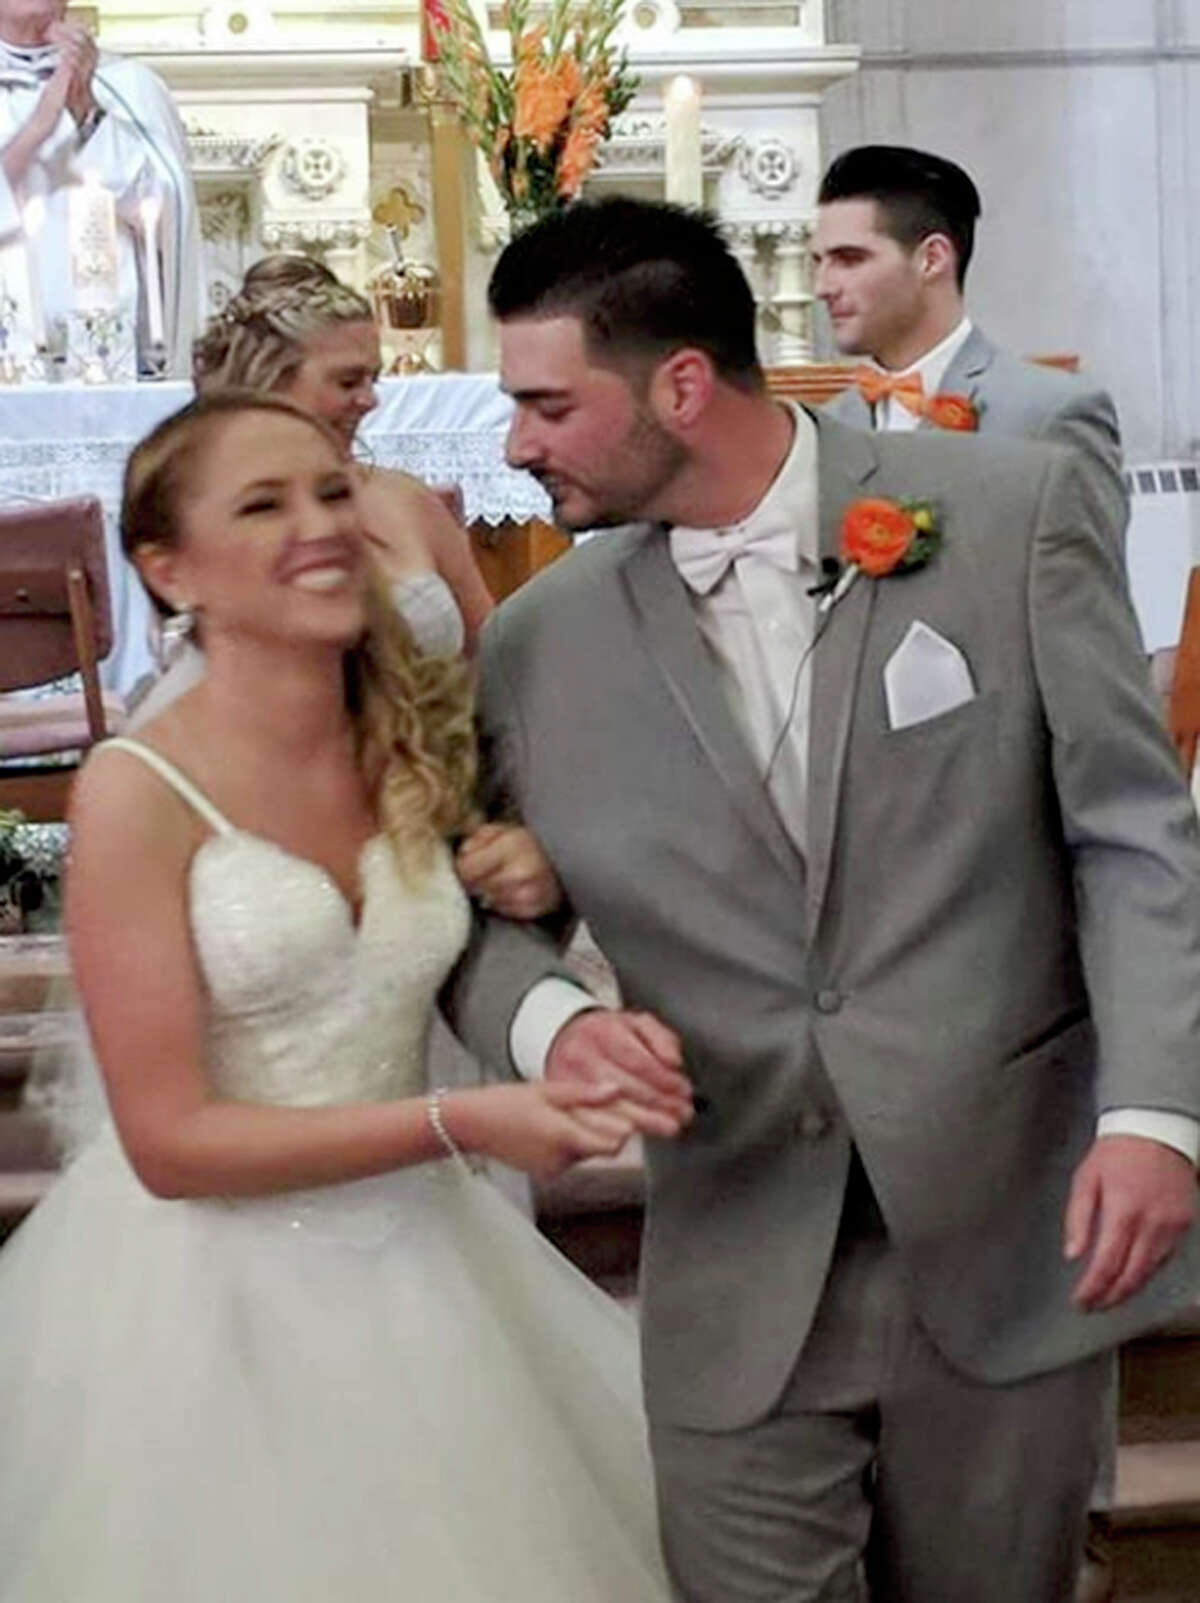 In this June 8, 2018 photo provided by Valerie Lynne Abeling, Erin and Shane McGowan attend their wedding reception in Amsterdam, N.Y. The couple were among the 20 people who died in Saturday's limousine crash in Schoharie, N.Y.